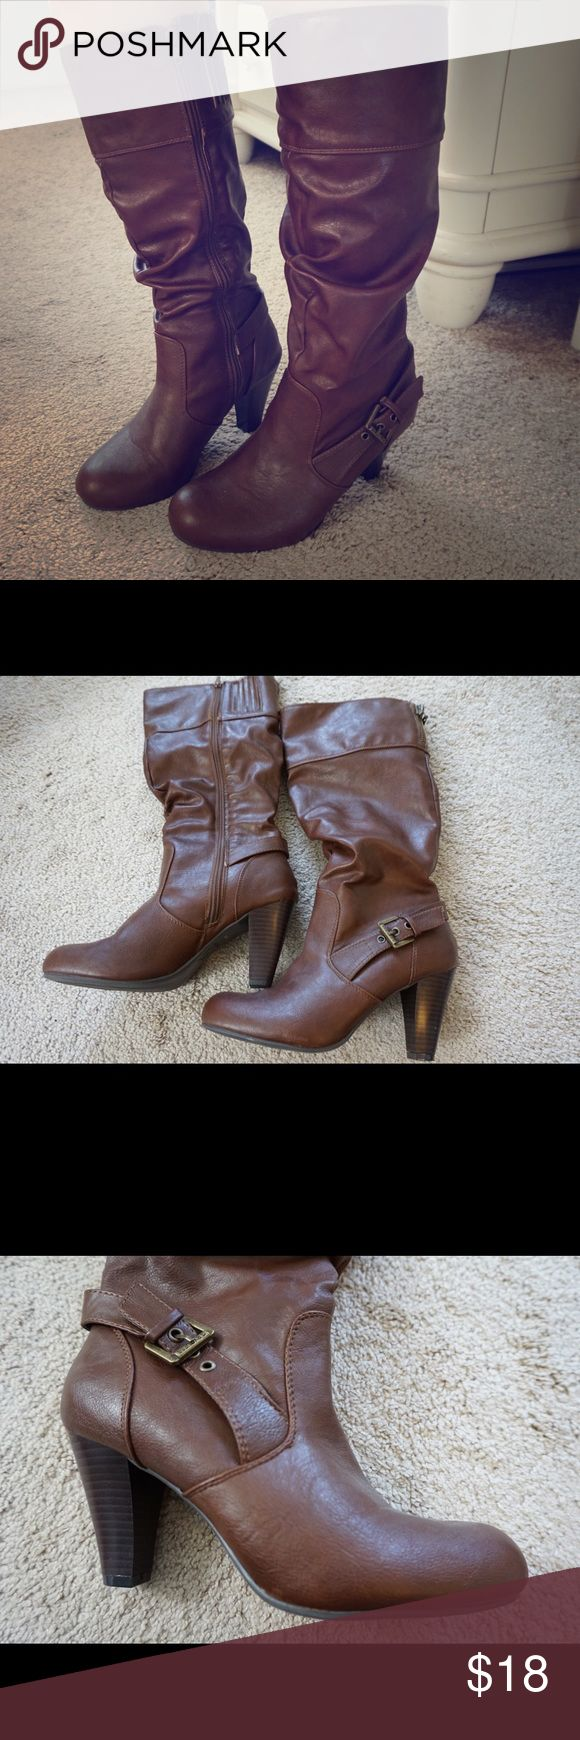 G by Guess Brown Heeled Boots Brown boots with zippers on the inside of the leg and buckle on the outside. They hit a few inches below the knee. I've worn these 1 time, so they are in brand new condition. G by Guess Shoes Heeled Boots